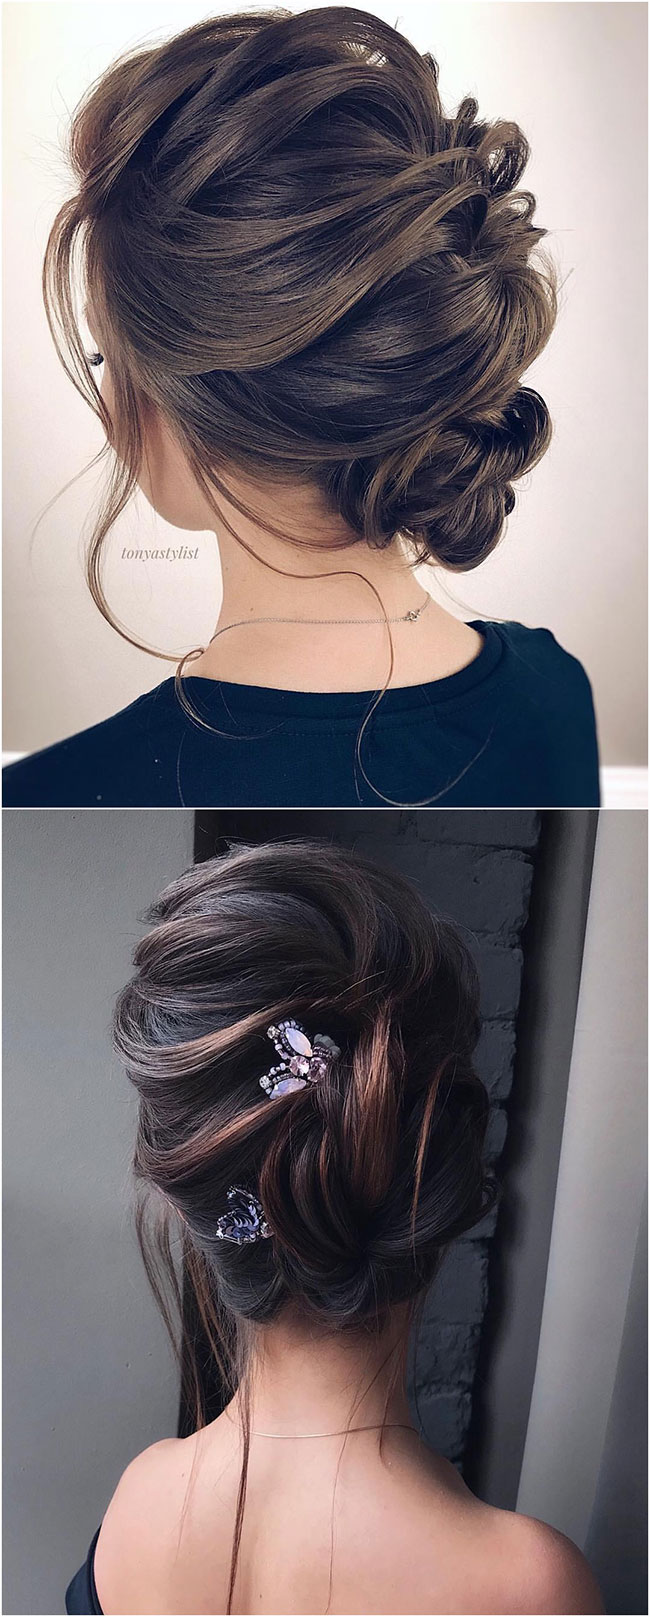 60 Best Wedding Hairstyles From Tonyastylist For The Modern